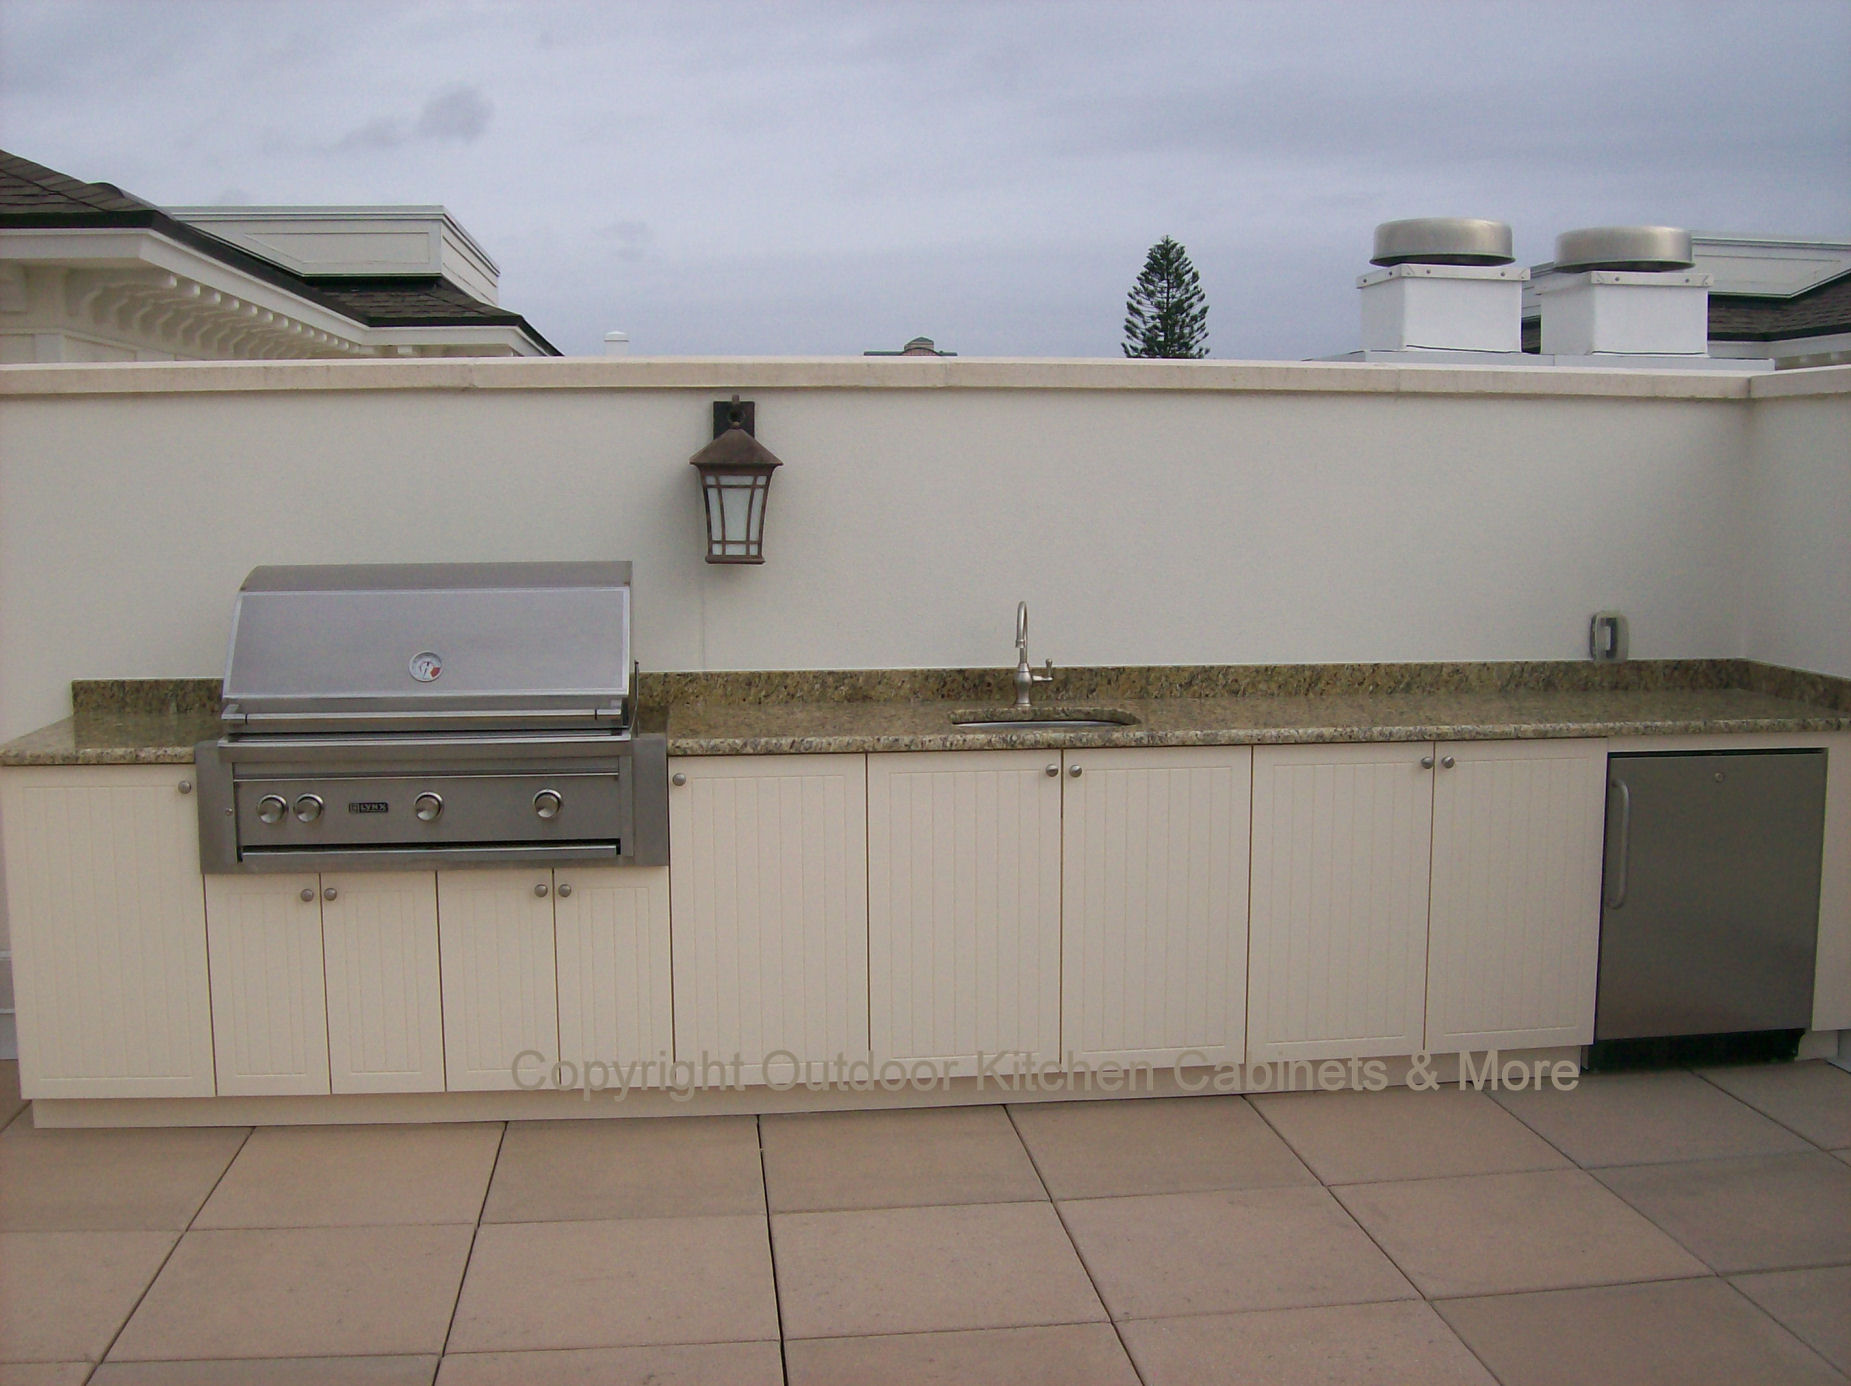 outdoor kitchen cabinets outdoor kitchen cabinets Roof Top Outdoor Kitchen Totally Exposed